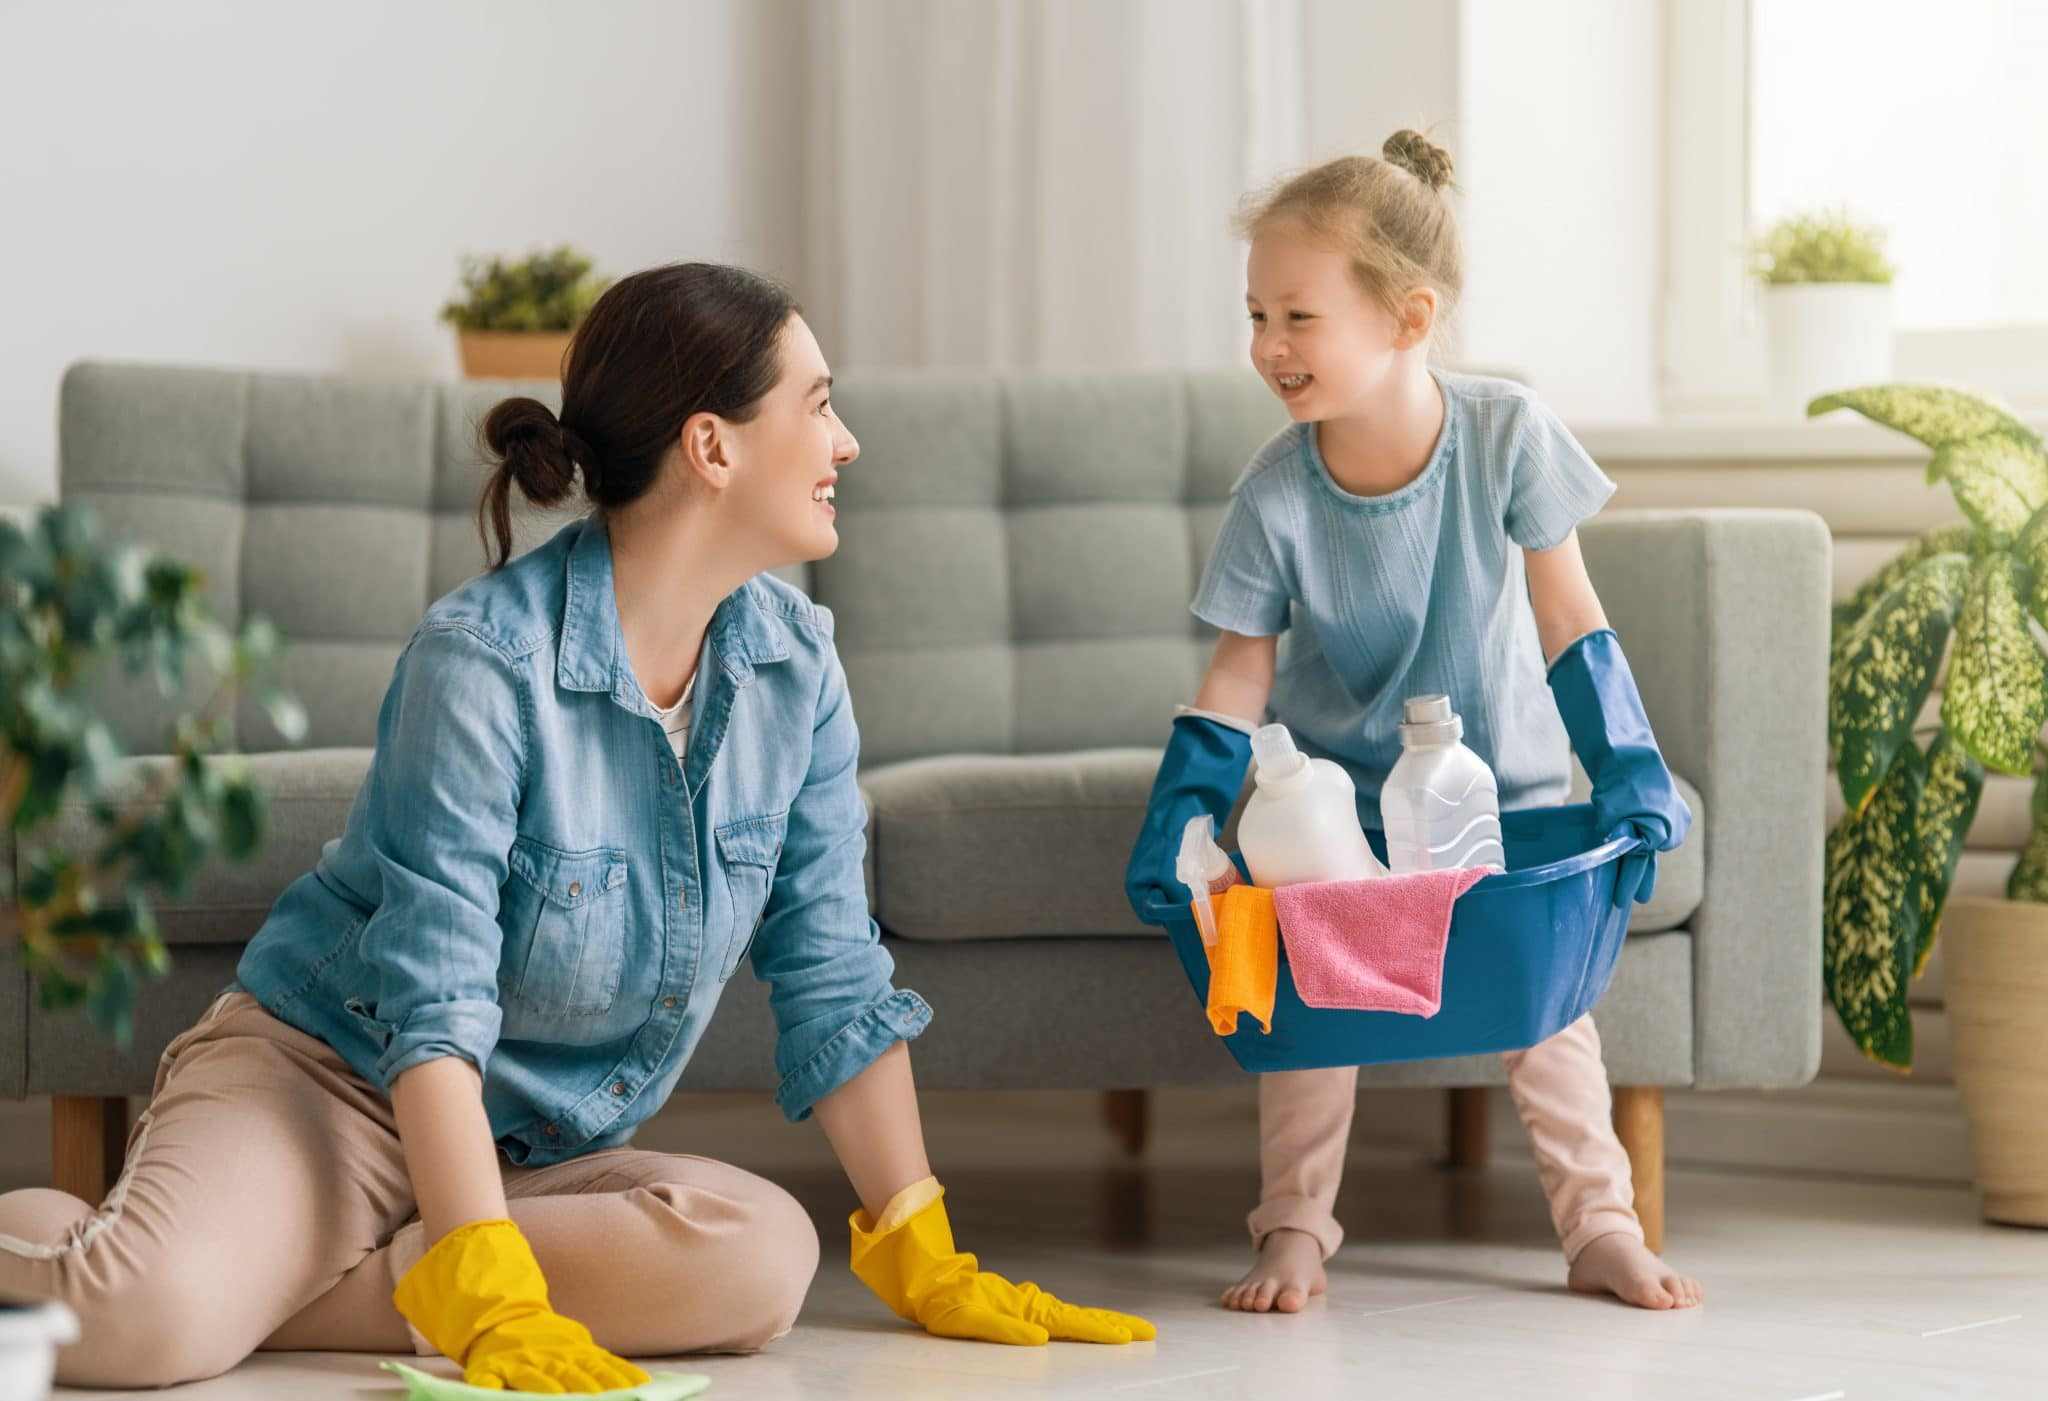 residential-cleaning-happy-mother-and-toddler-cleaning-together-using-safe-green-cleaning-products